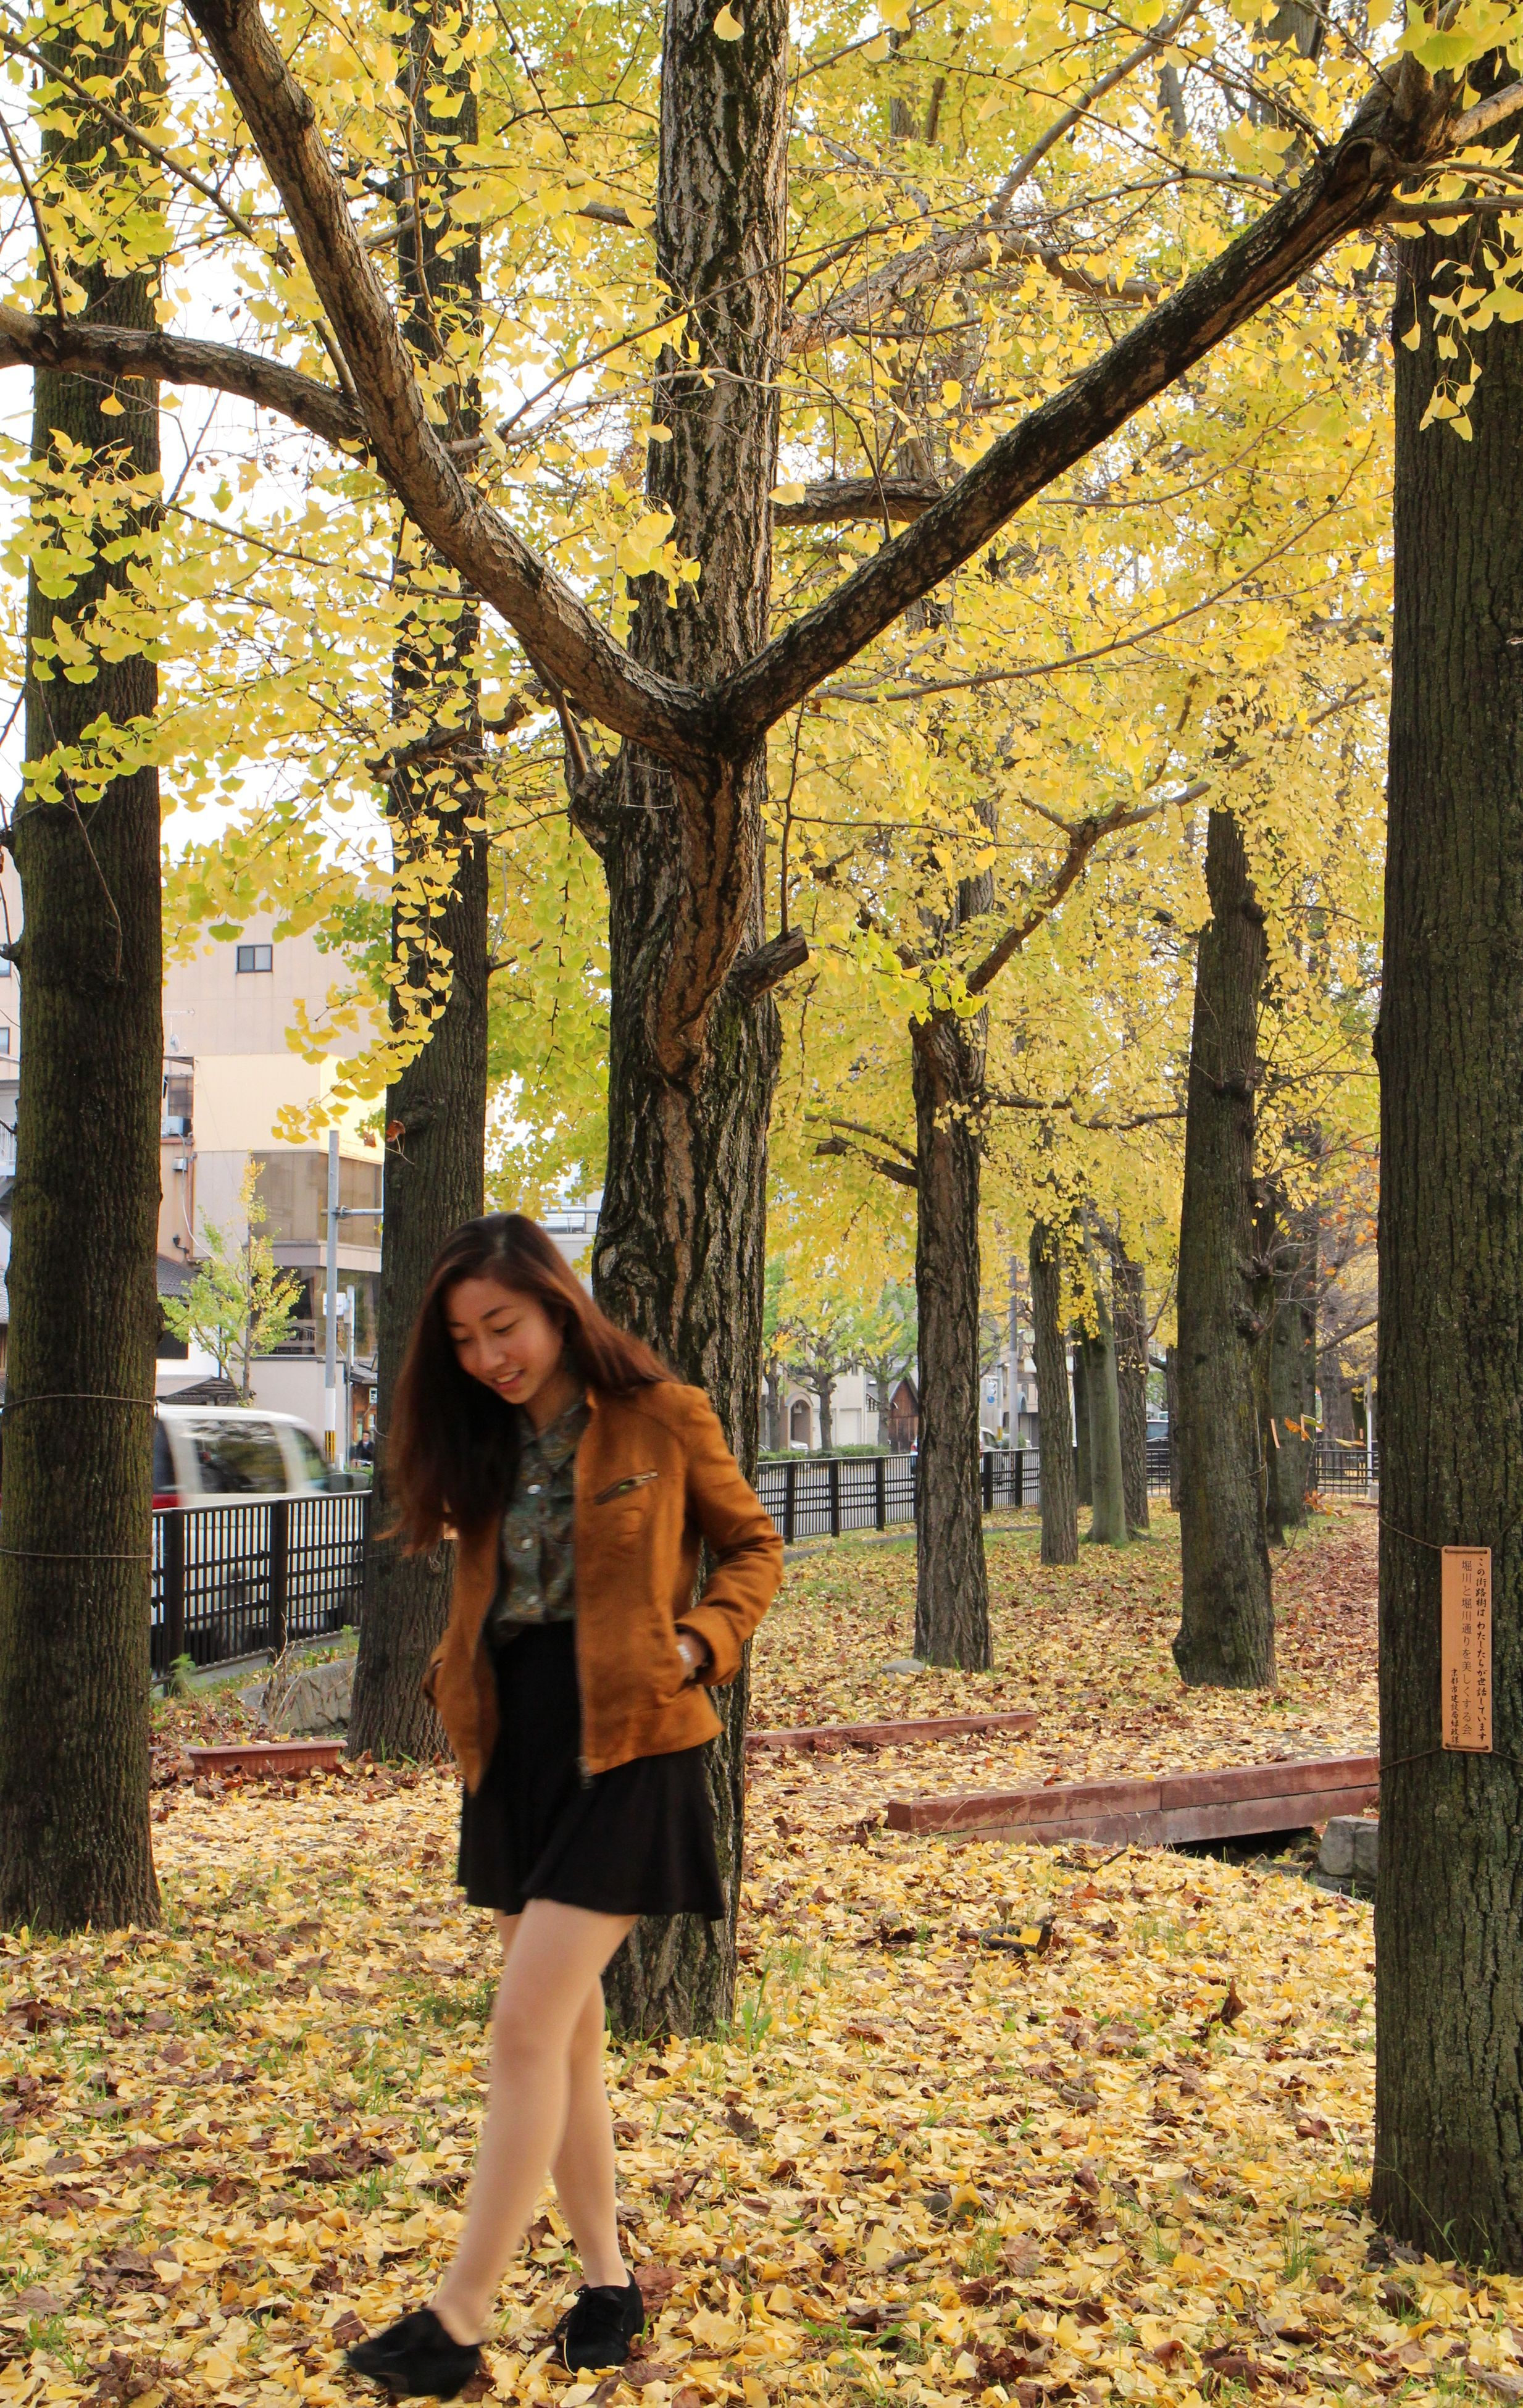 tree, lifestyles, leisure activity, standing, casual clothing, full length, tree trunk, young adult, autumn, young women, growth, person, three quarter length, park - man made space, rear view, leaf, nature, long hair